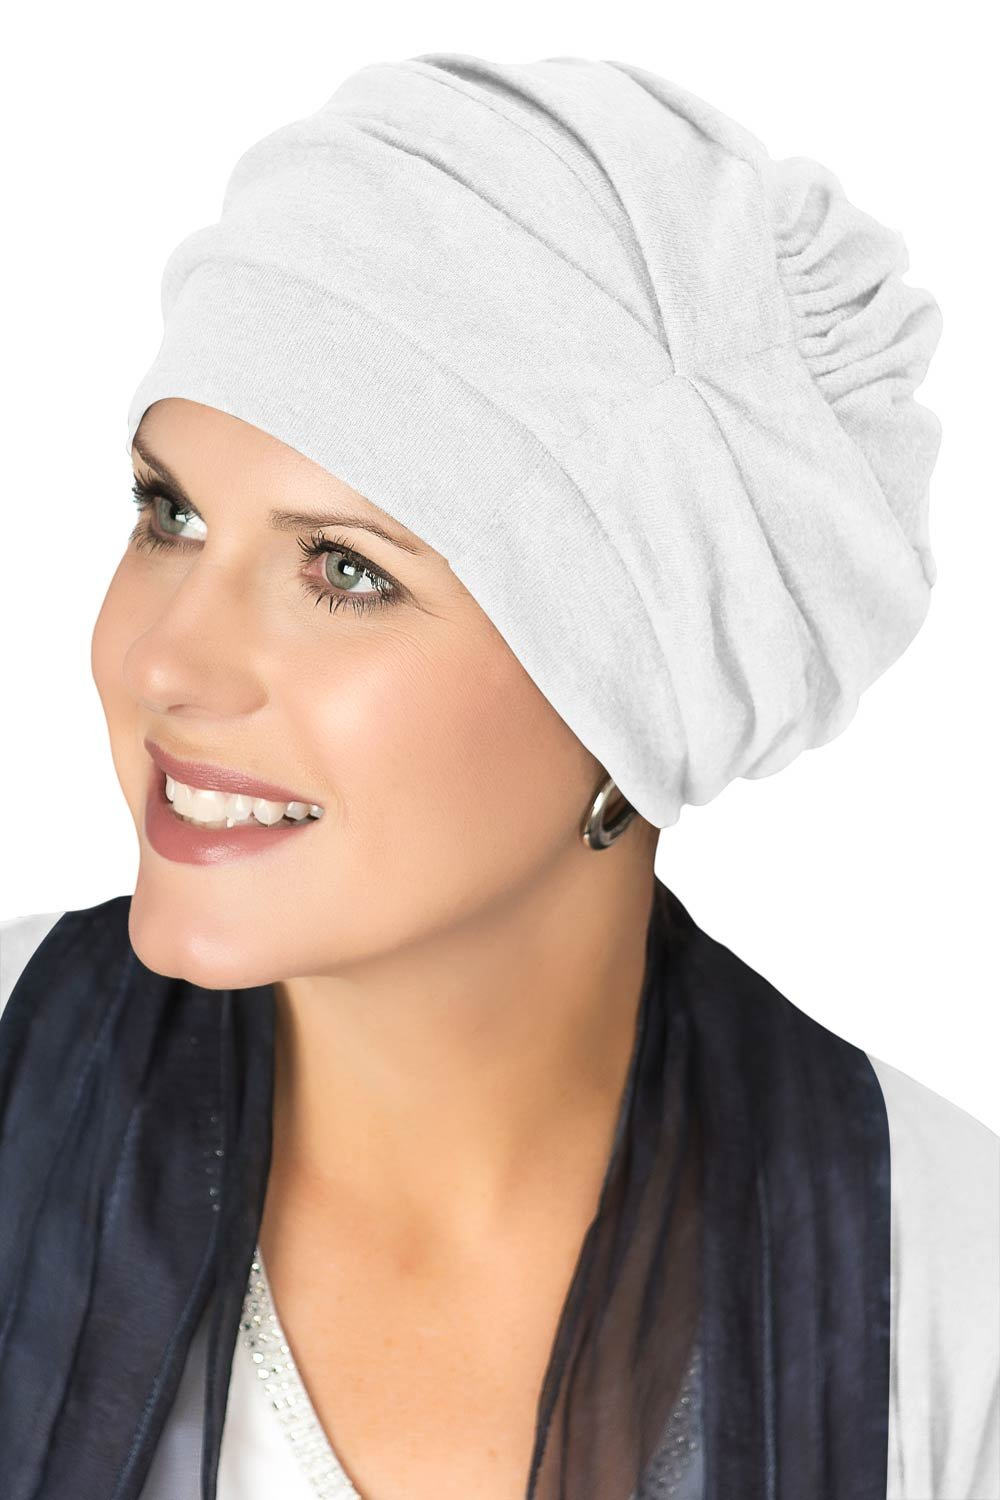 Headcovers Unlimited Trinity Turban-Caps for Women with Chemo Cancer Hair Loss White TU-12436-8119